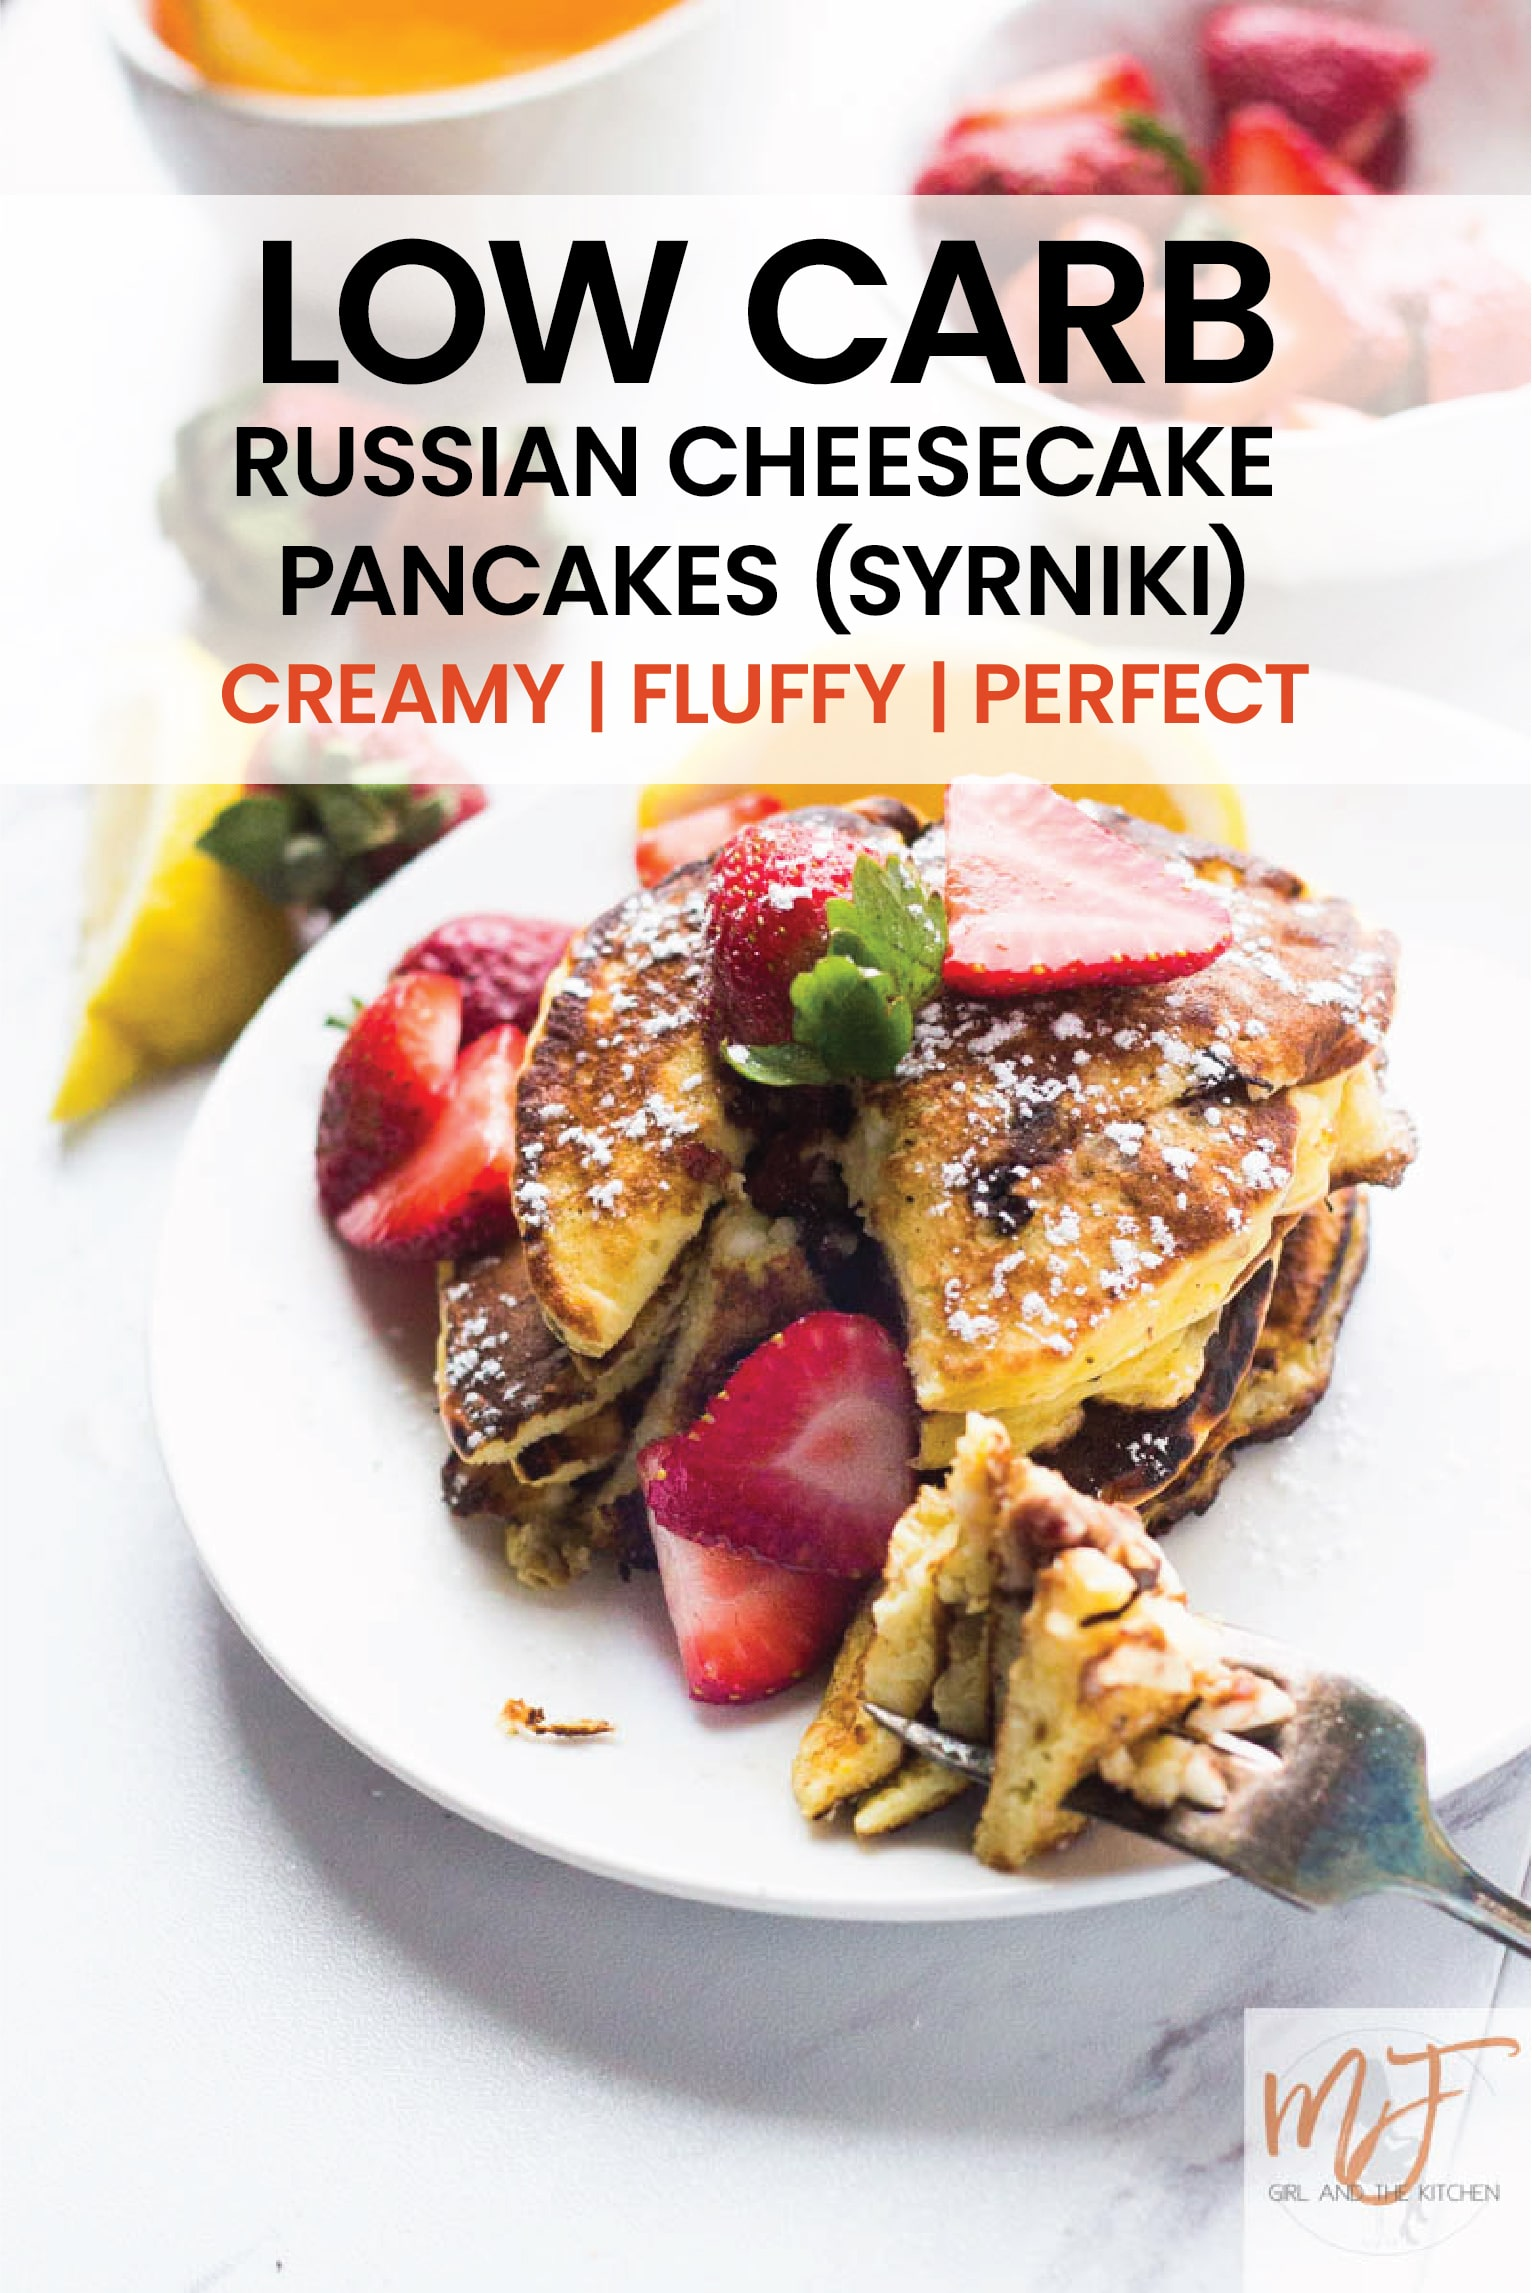 These creamy and fluffy Russian cheesecake pancakes are the perfect start to any morning!  Full of probiotics and good for you fats, these babies are the ultimate low carb treat for any child, parent or any picky eater! #lowcarb #keto #breakfast